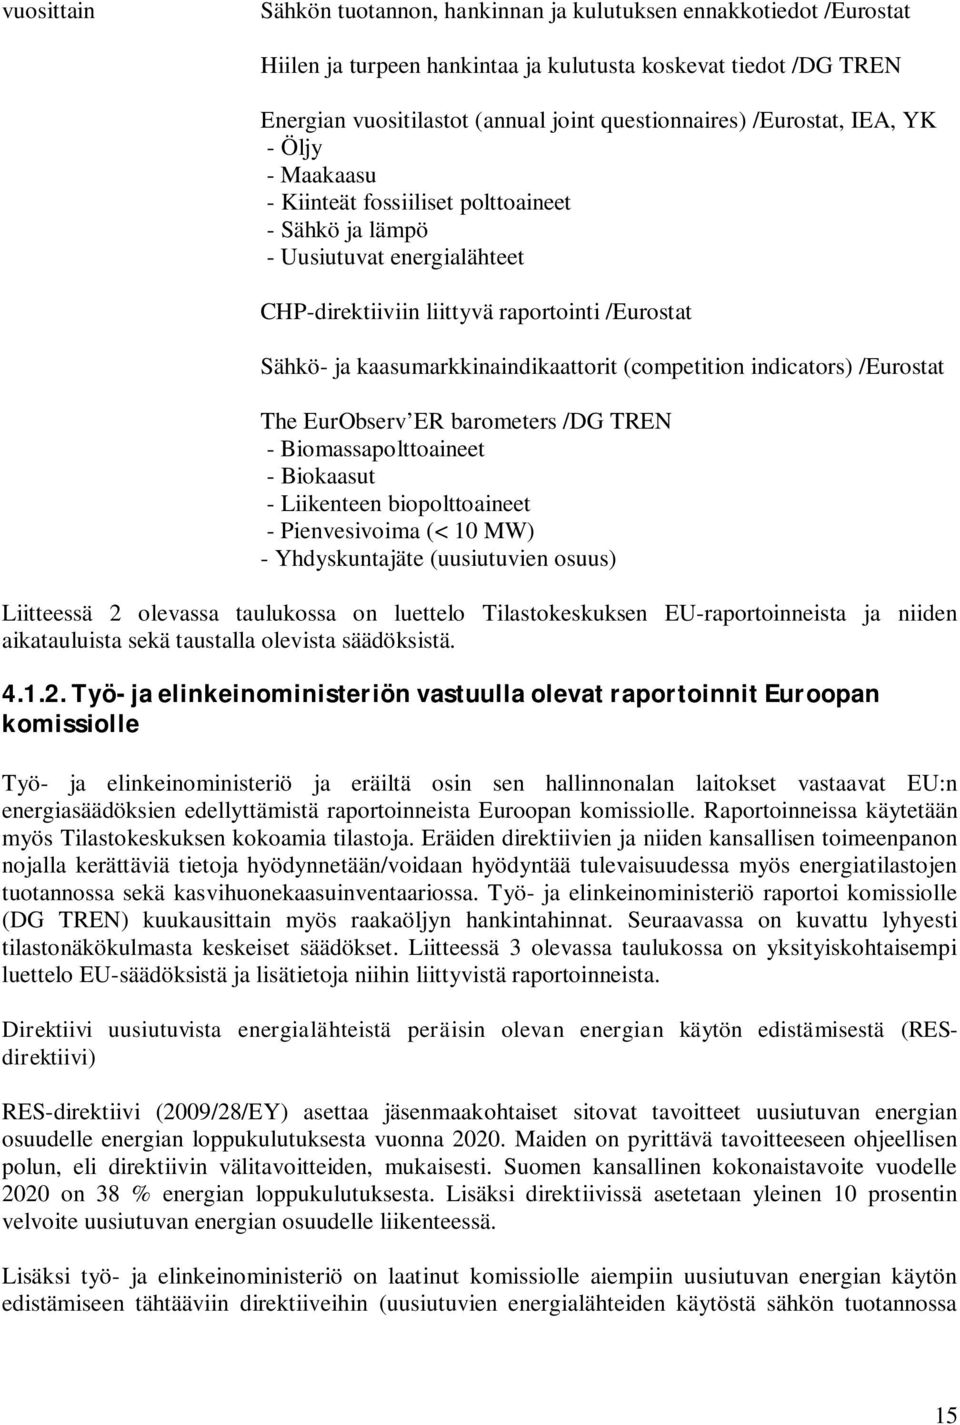 kaasumarkkinaindikaattorit (competition indicators) /Eurostat The EurObserv ER barometers /DG TREN - Biomassapolttoaineet - Biokaasut - Liikenteen biopolttoaineet - Pienvesivoima (< 10 MW) -